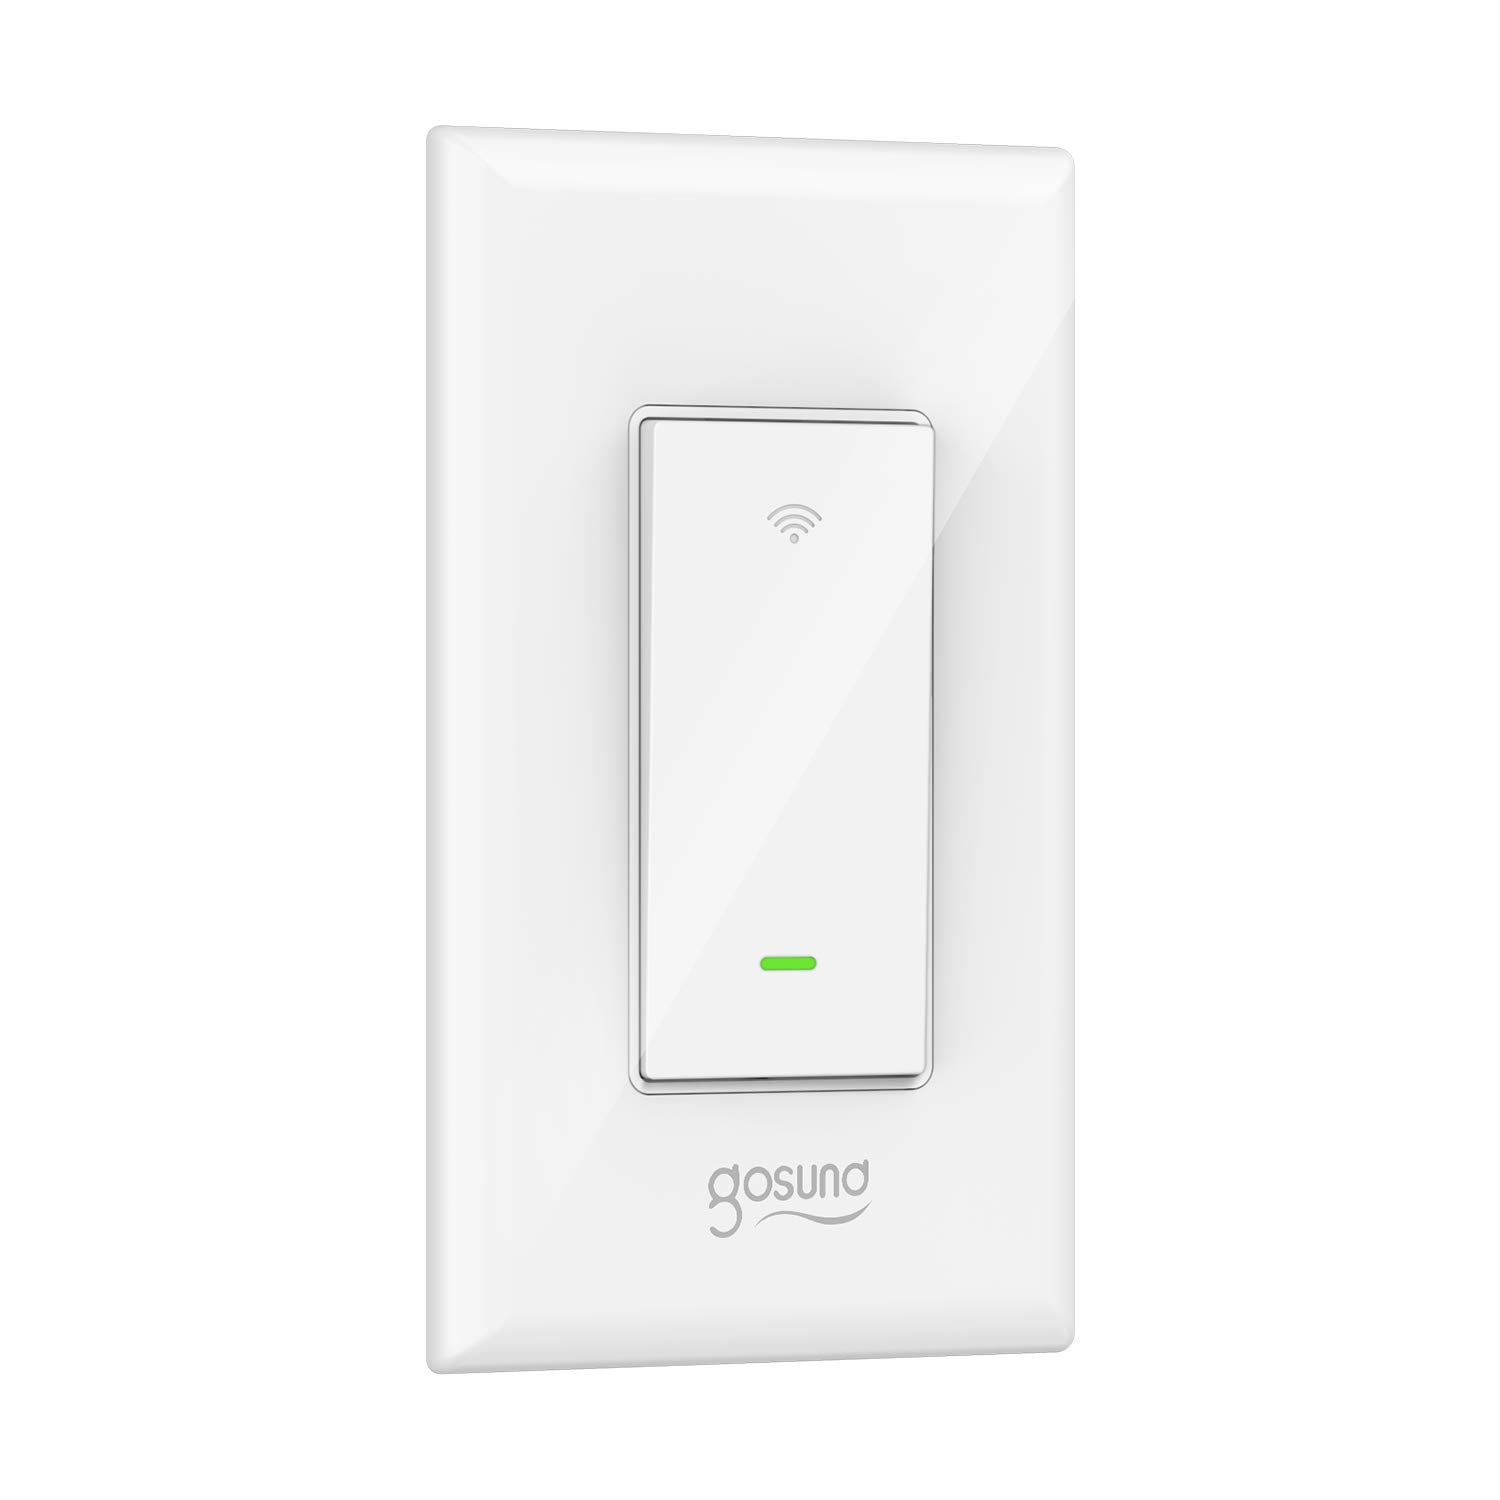 Smart Light Switch, Gosund 15A Smart Wifi Light Switch with Remote Control and Timer, Works with Alexa, Google home and IFTTT, No Hub required, Easy and Safe installation, ETL and FCC listed. (1pack)